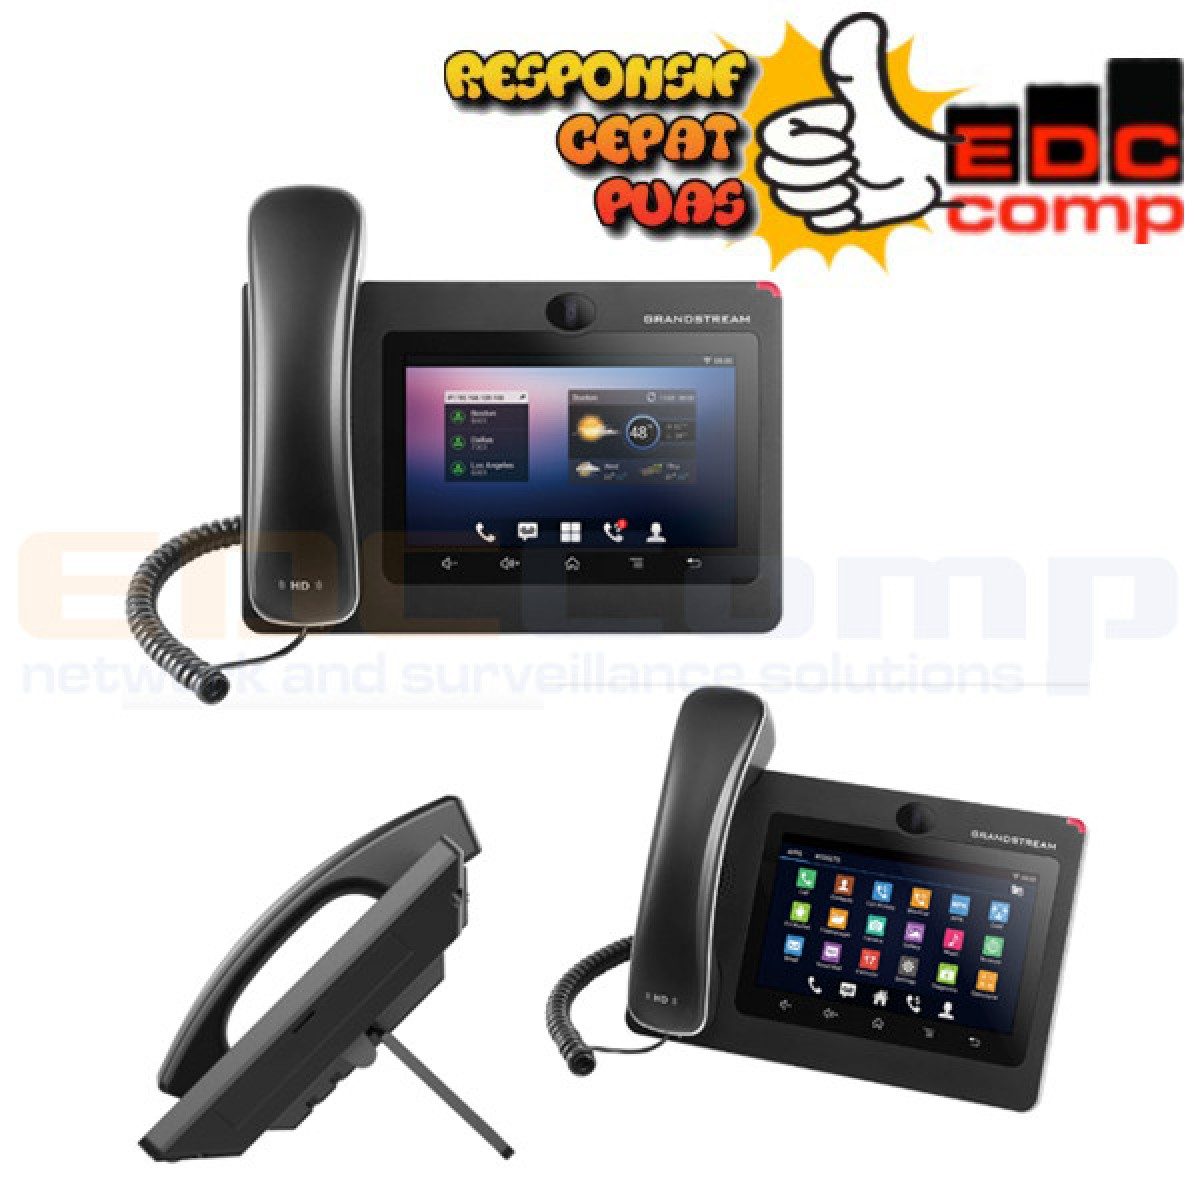 Grandstream GXV3275 IP Video Phone with Android™ /GS GXV3275 - EdcComp